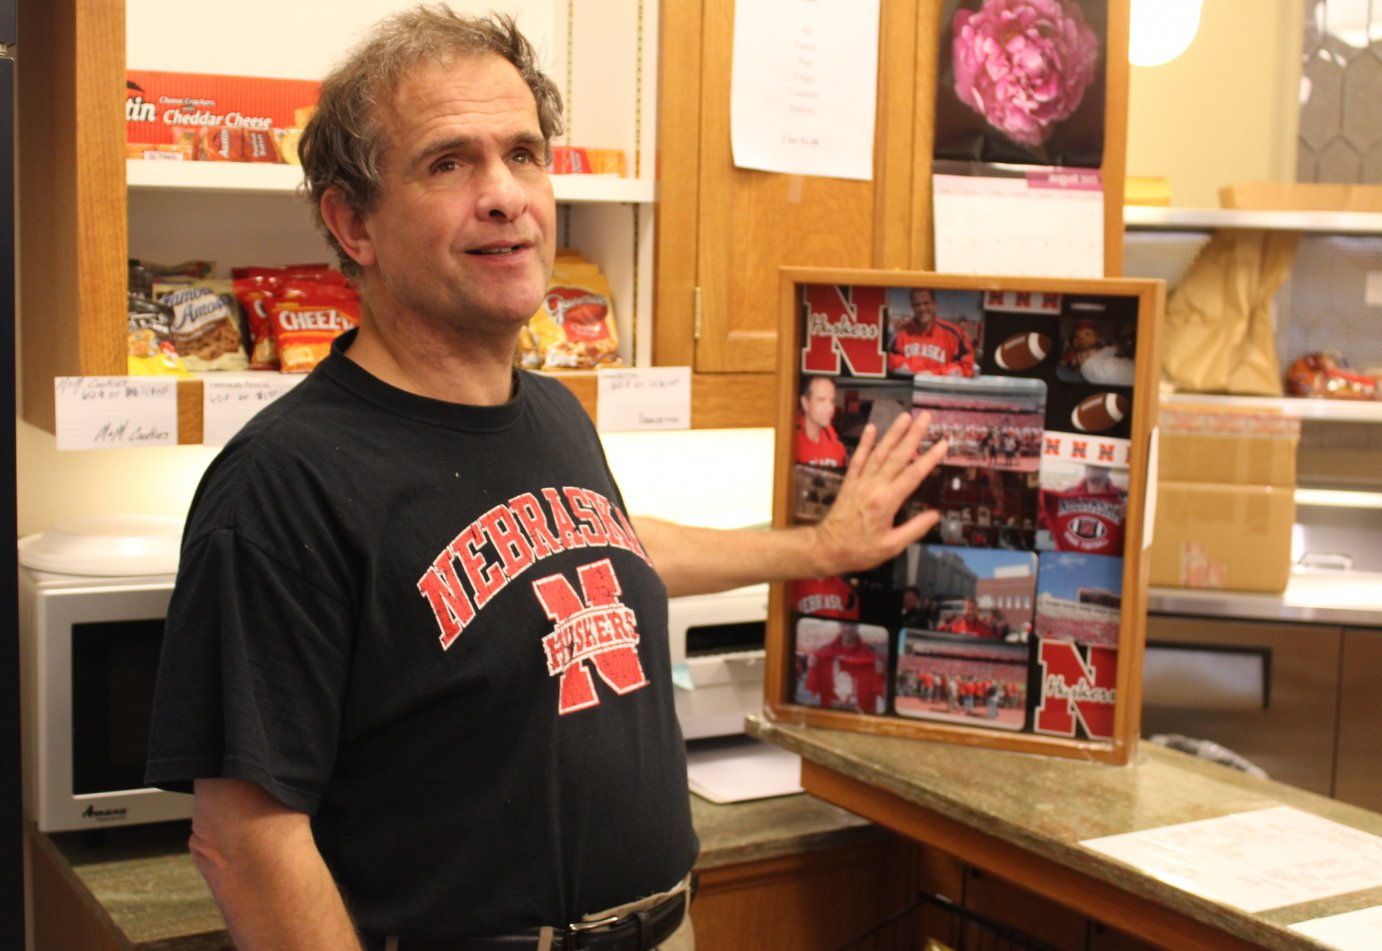 Don Wistuba, a dedicated Huskers fan, shows off some Huskers memorabilia in his snack shop. He's planning to close his doors after nearly 40 years in the Kansas Statehouse. (Photo by Stephen Koranda)